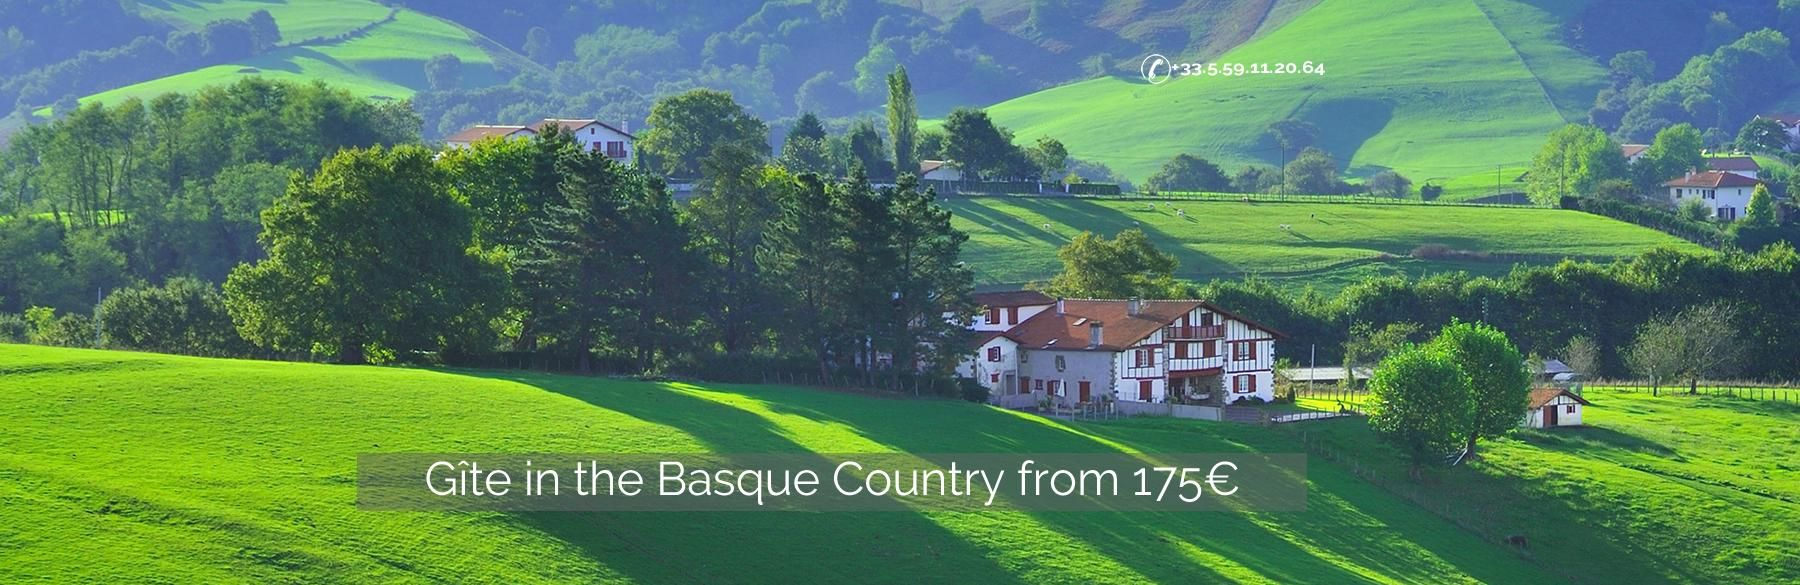 gite basque country